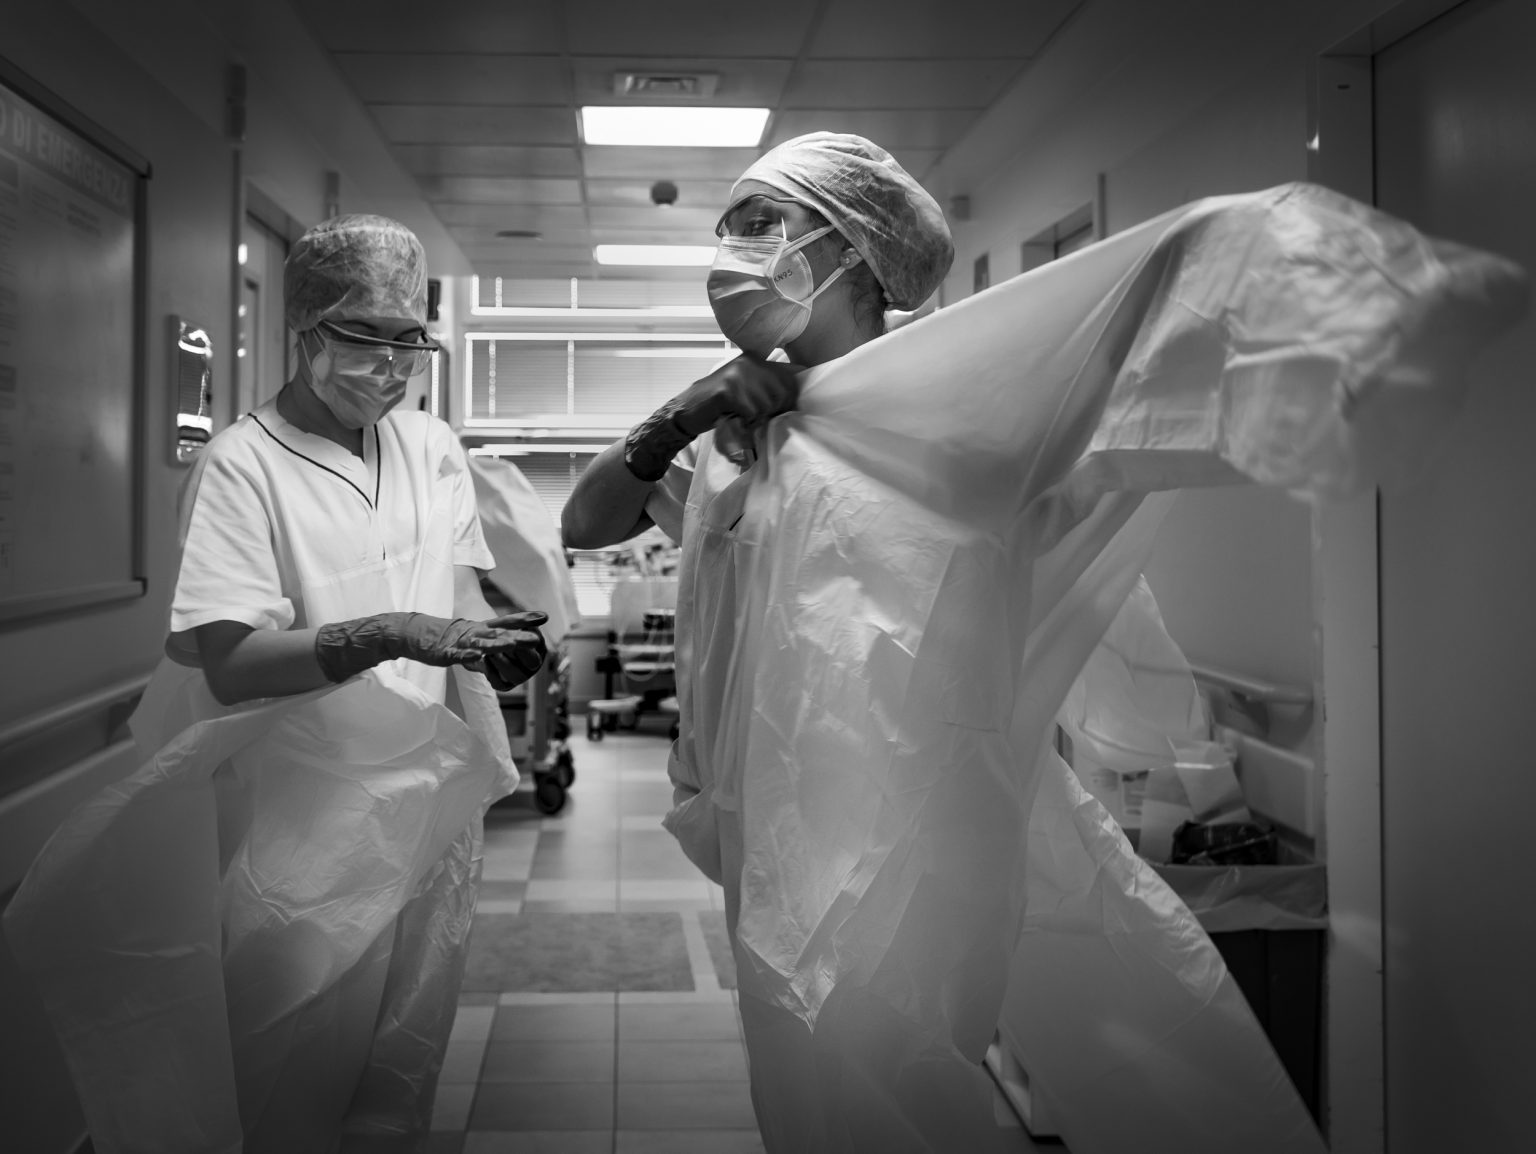 The General Hospital. Complex Structure Respiratory Tract Diseases. Sub-Intensive Care. Pneumology. Nurses dressing up before entering the negative pressure rooms housing severe Coronavirus patients. Modena, Italy, 2020